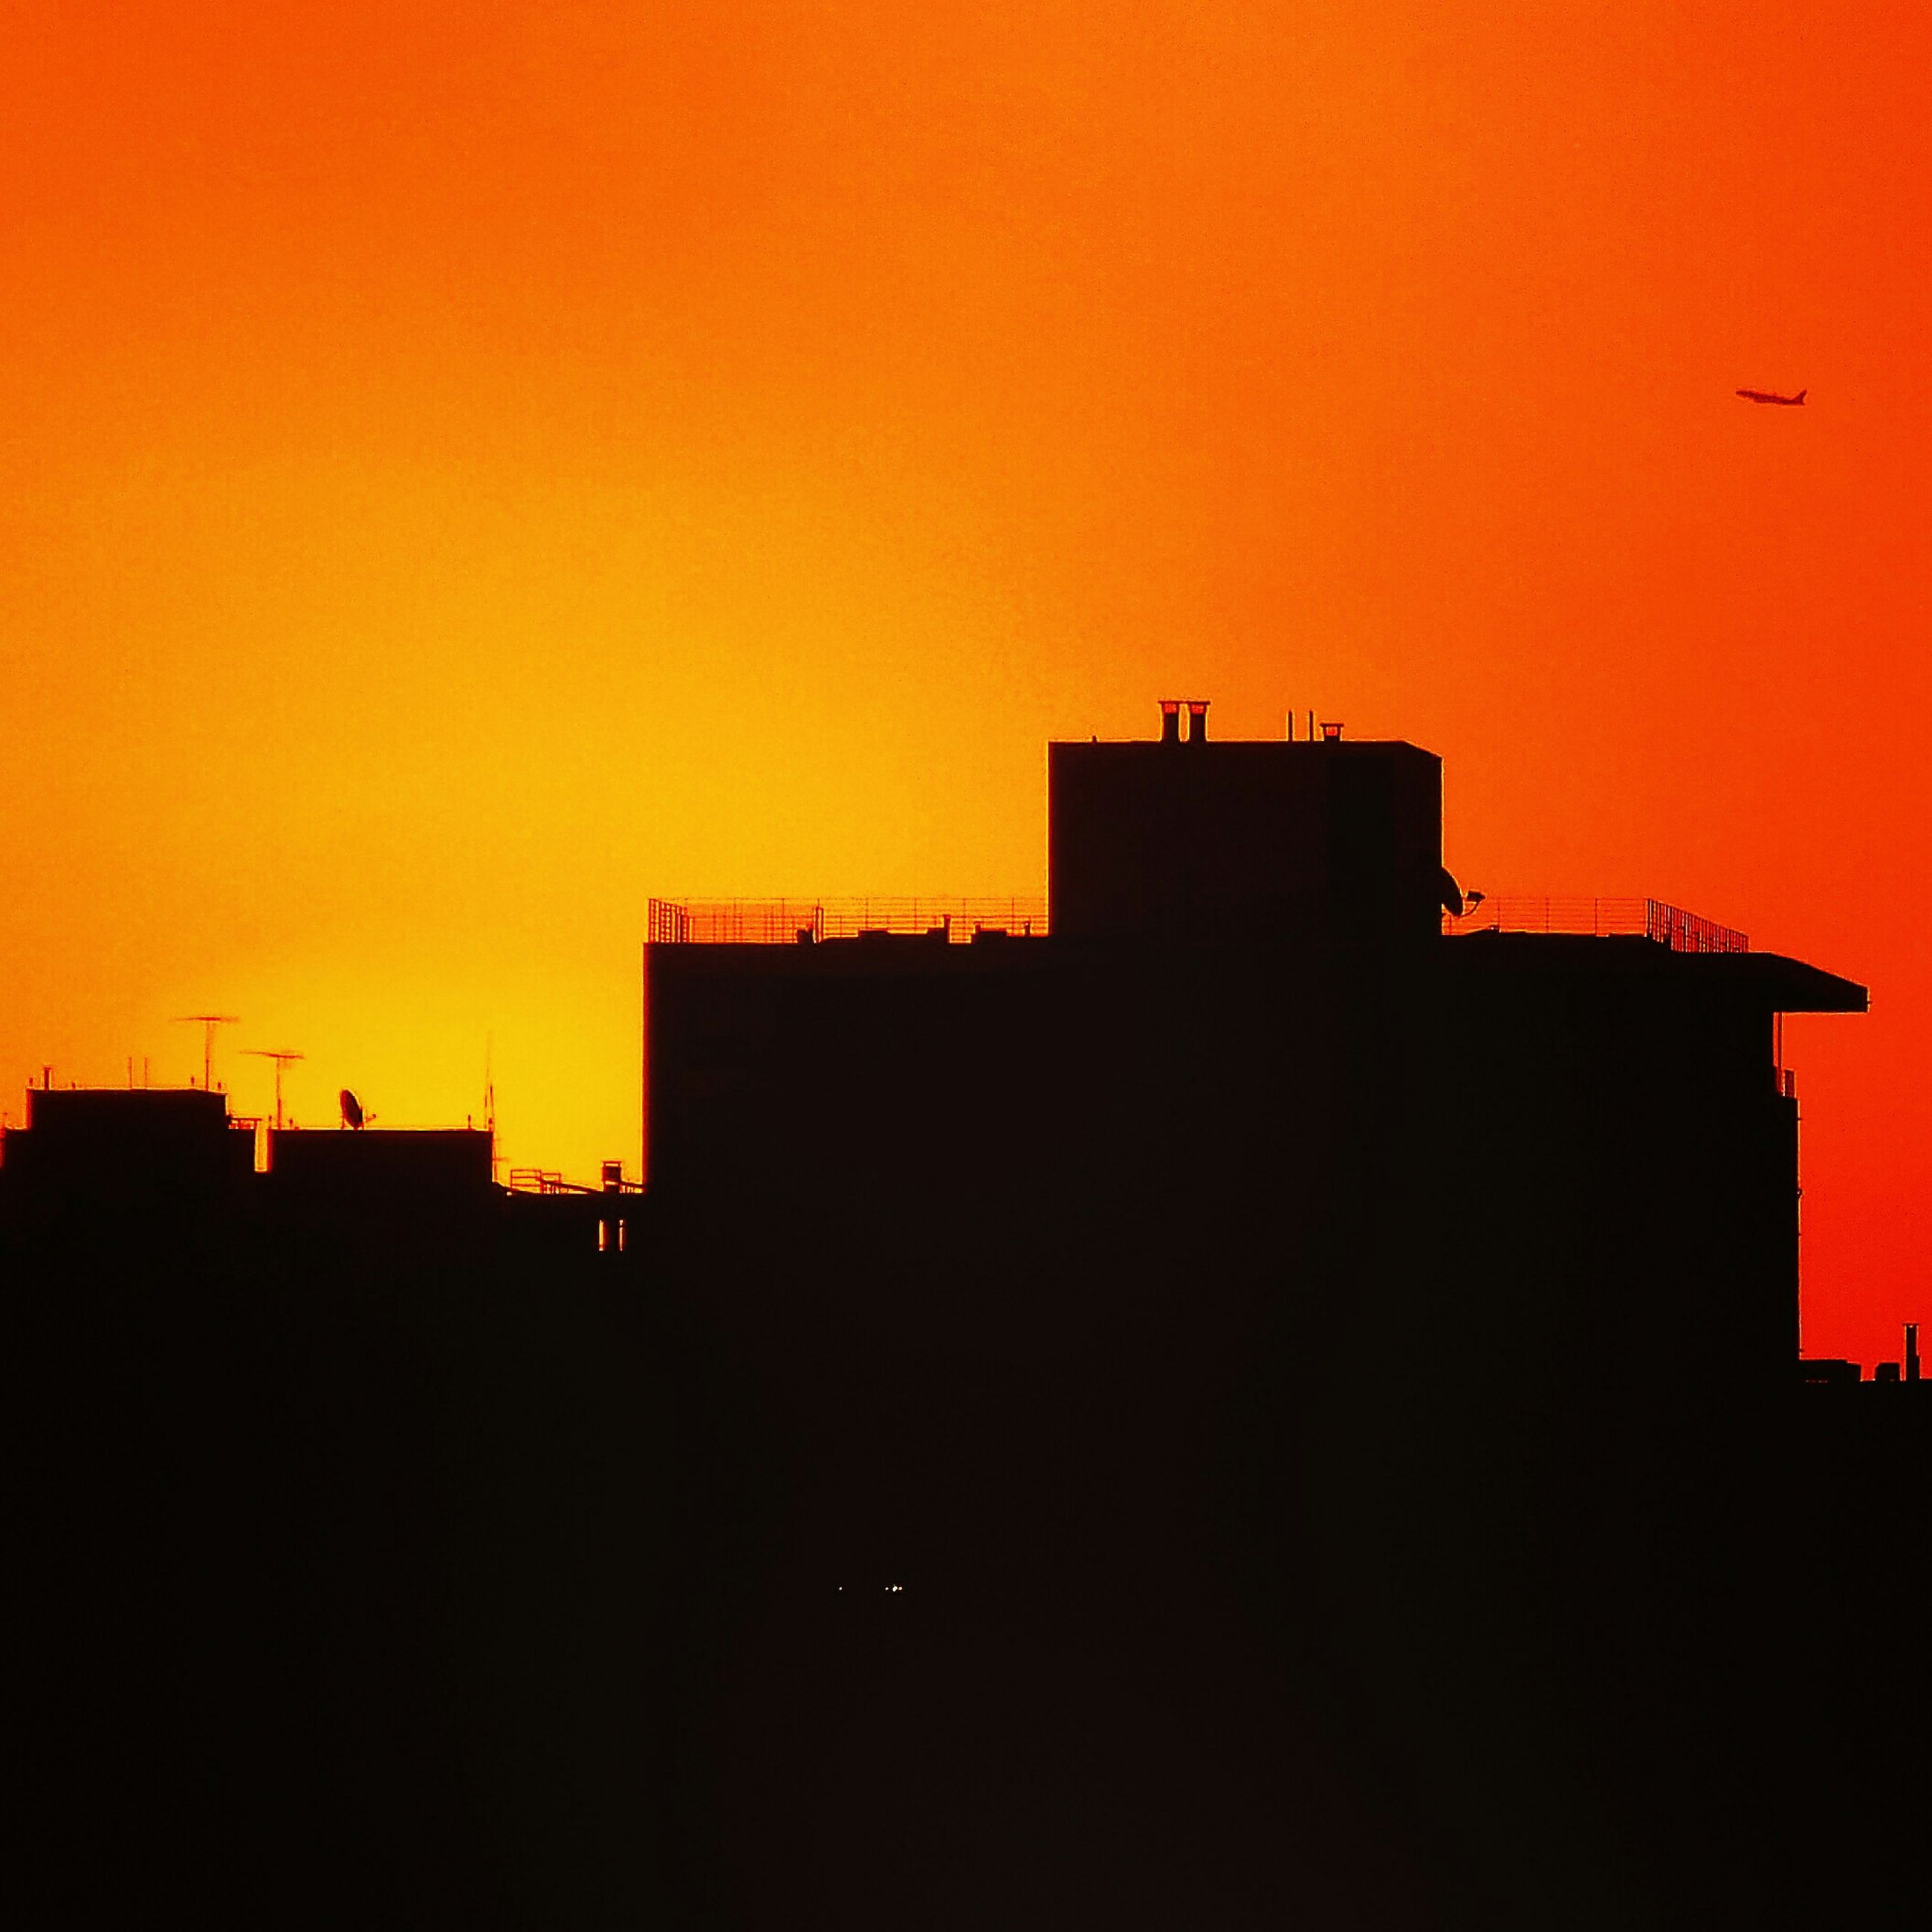 sunset, silhouette, architecture, building exterior, orange color, built structure, copy space, clear sky, low angle view, house, building, residential structure, outdoors, no people, high section, nature, residential building, sky, dusk, dark